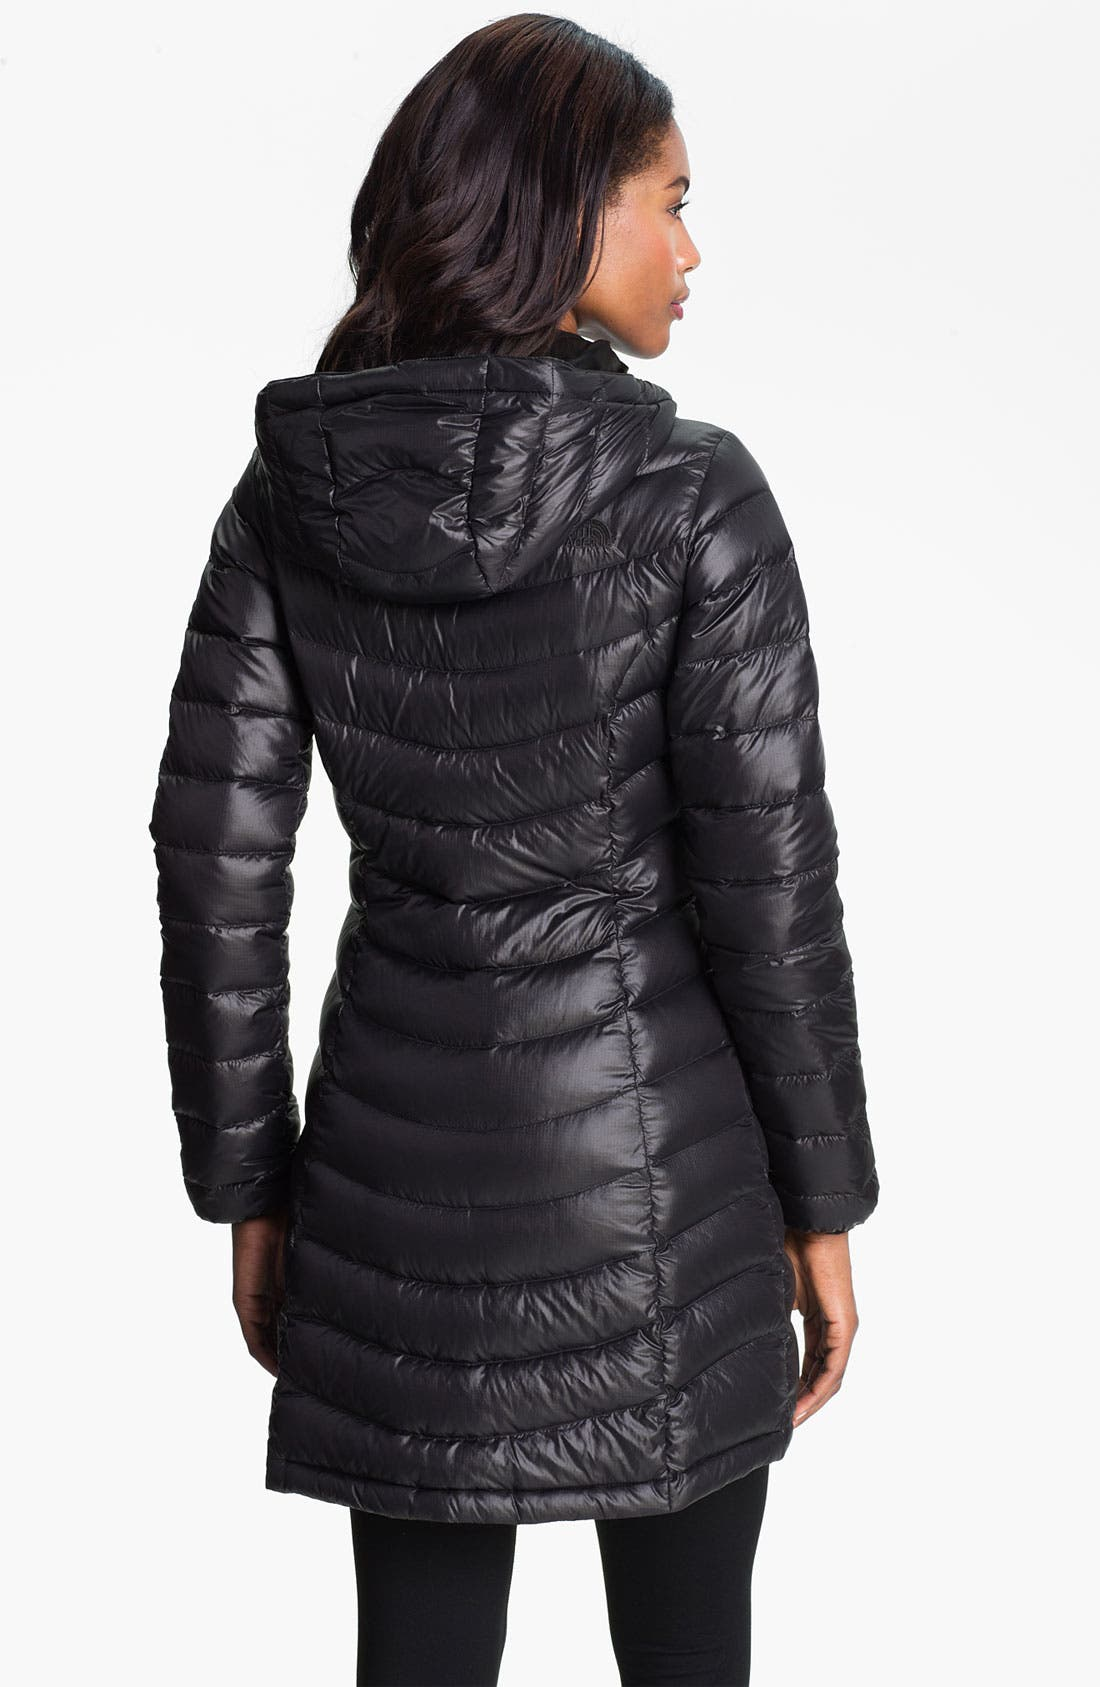 THE NORTH FACE, 'Jenae' Hooded Down Jacket, Alternate thumbnail 2, color, 001